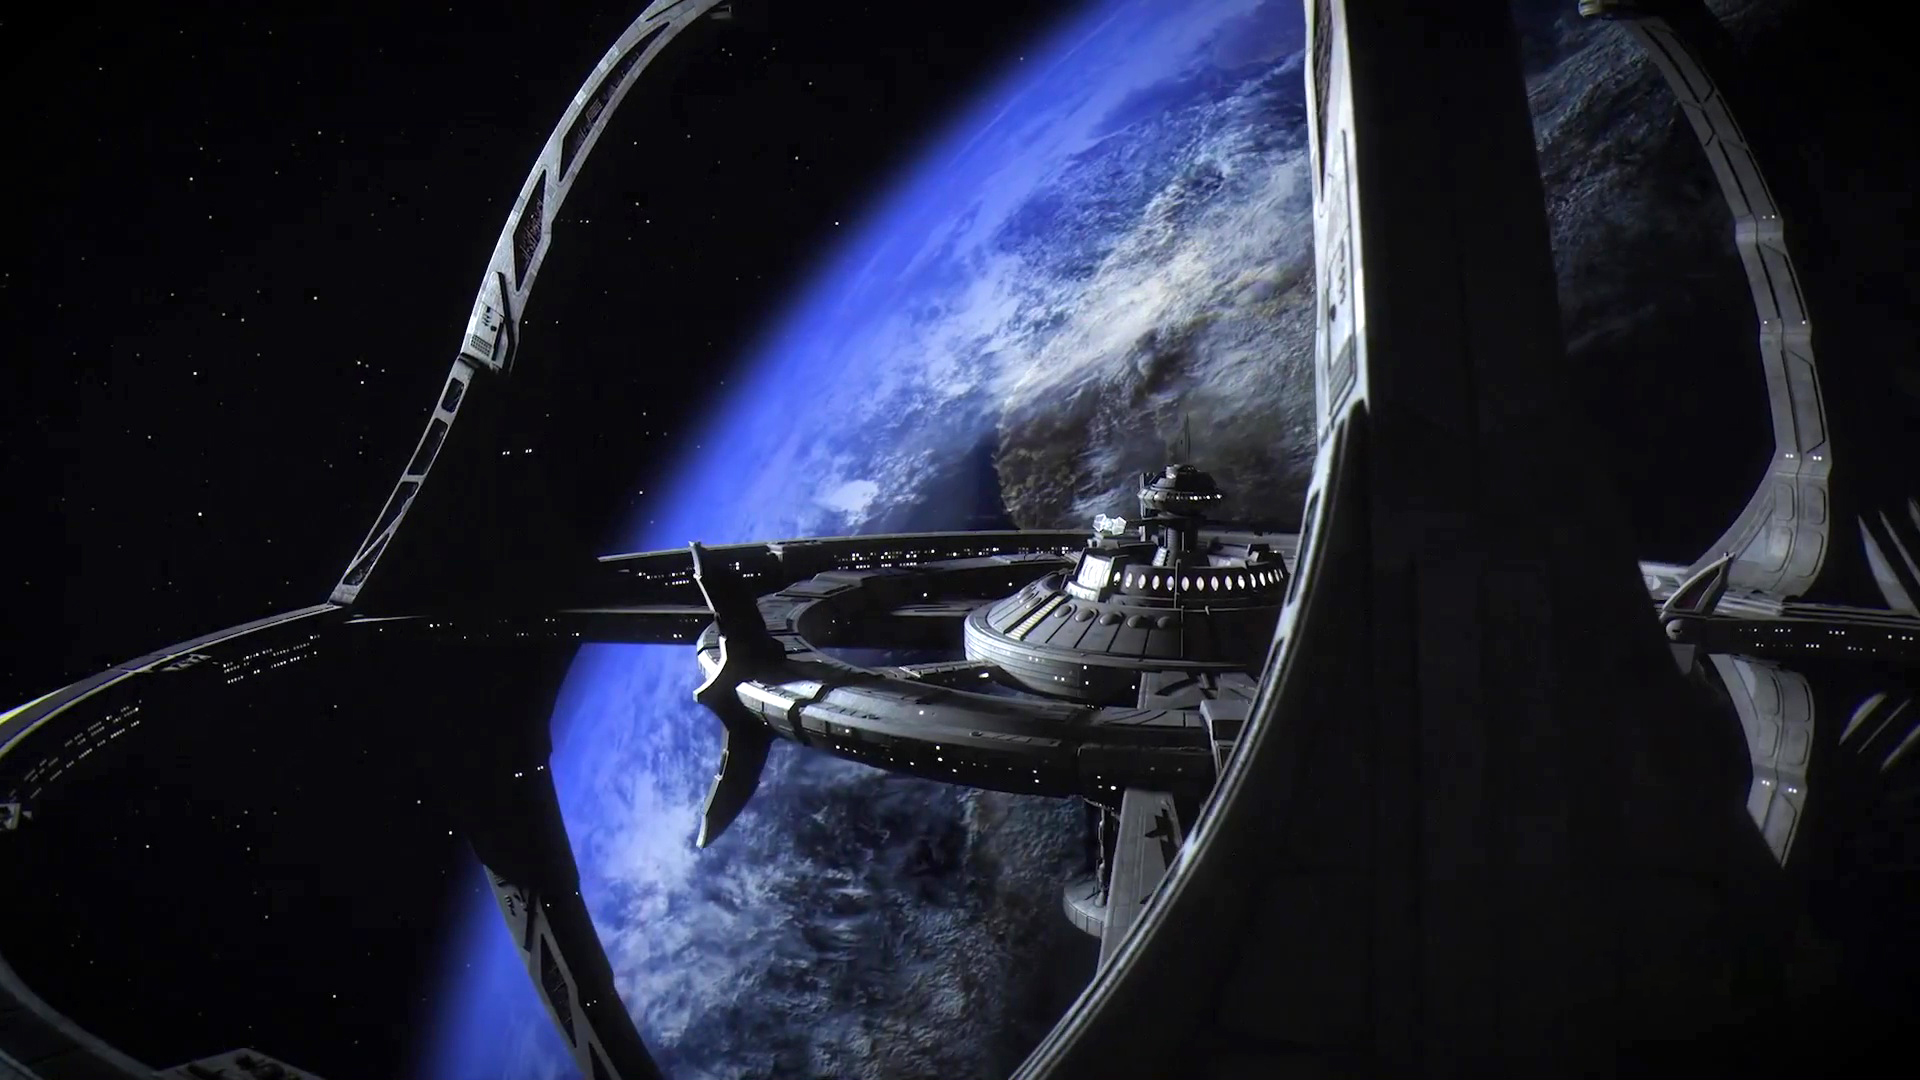 cardassian space station - photo #23